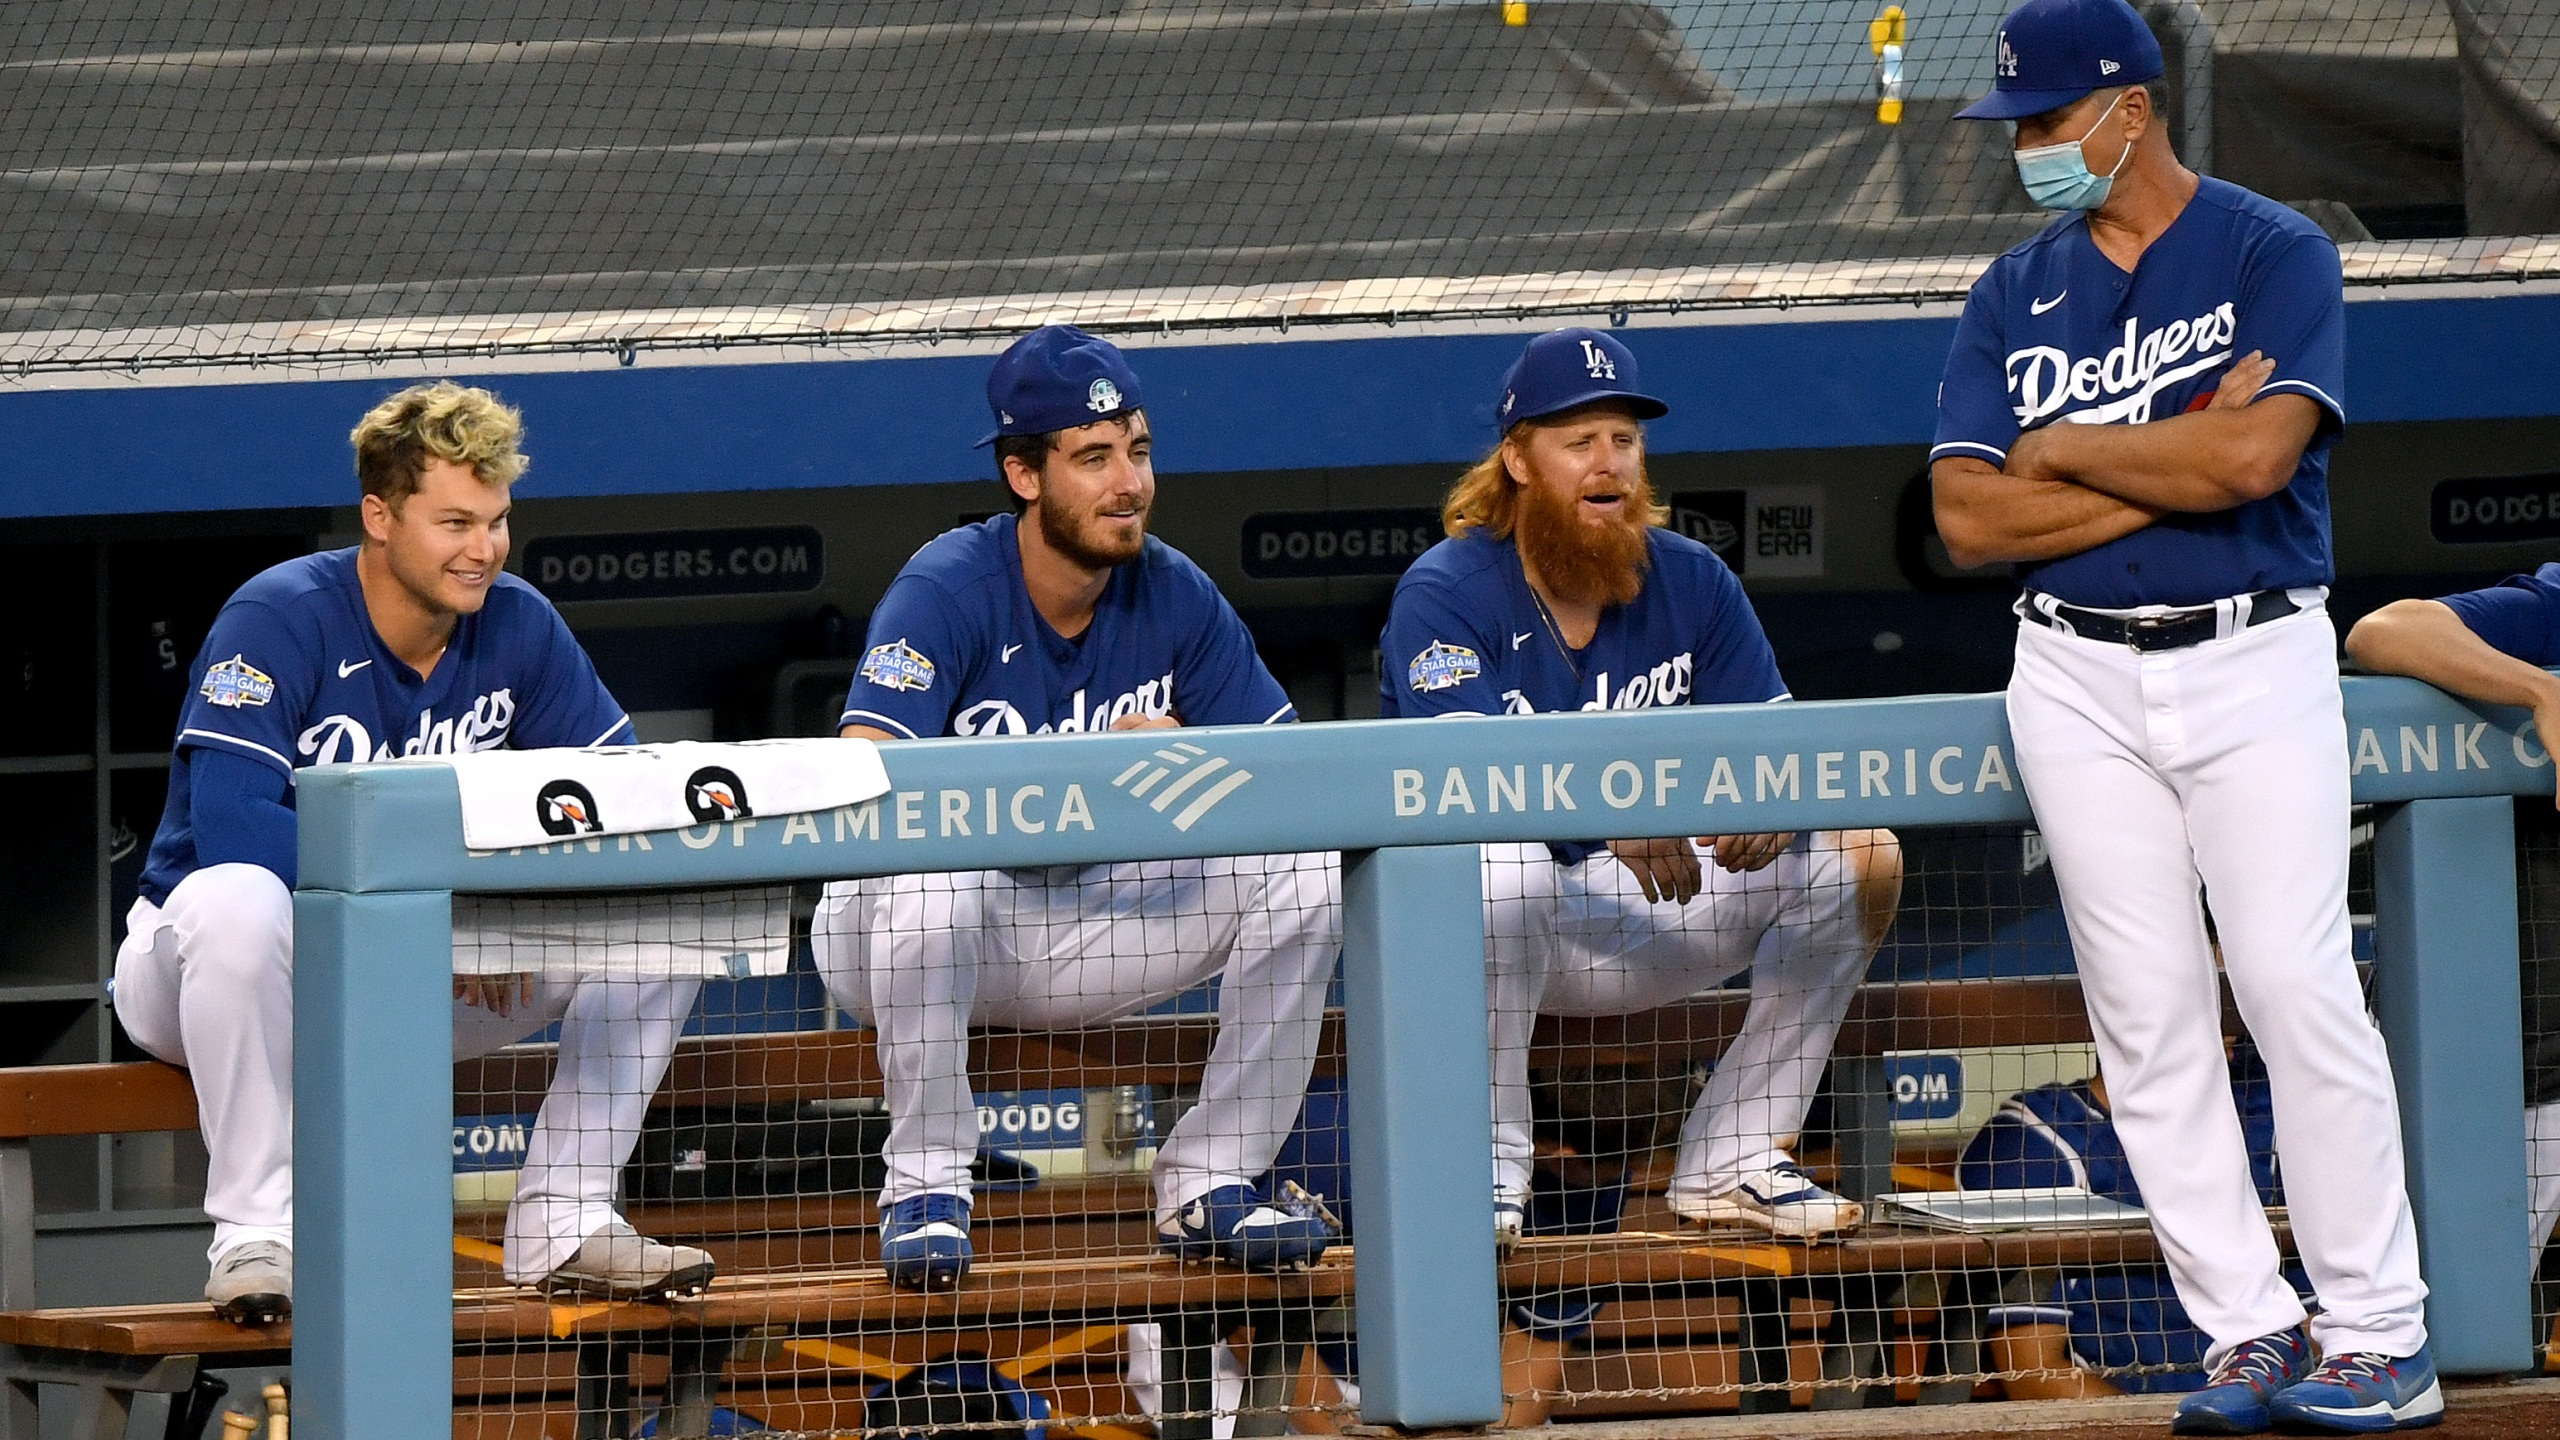 Joc Pederson, Cody Bellinger, Justin Turner and Bob Geren talk during the Los Angeles Dodgers summer camp workout in preparation for the 2020 season at Dodger Stadium on July 14, 2020. (Harry How/Getty Images)